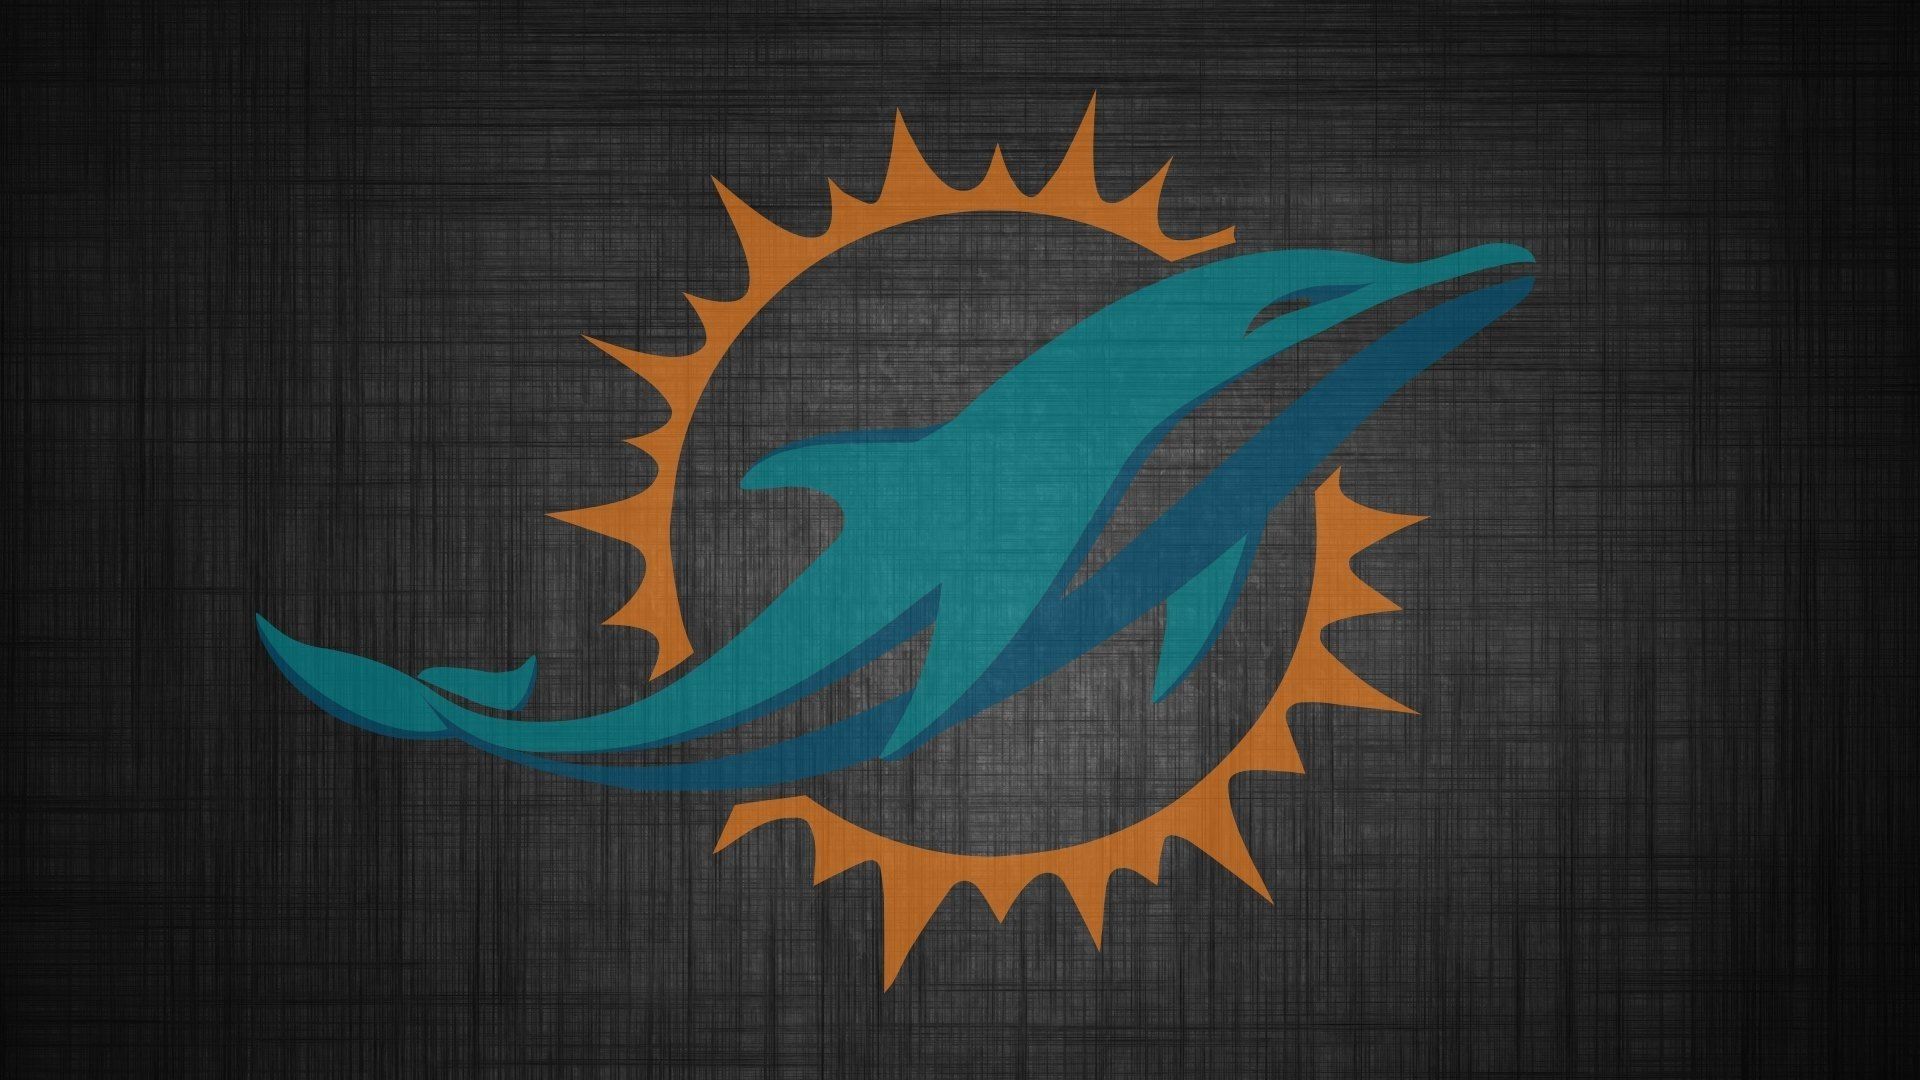 miami dolphins computer wallpaper 52924 1920x1080 px ~ hdwallsource